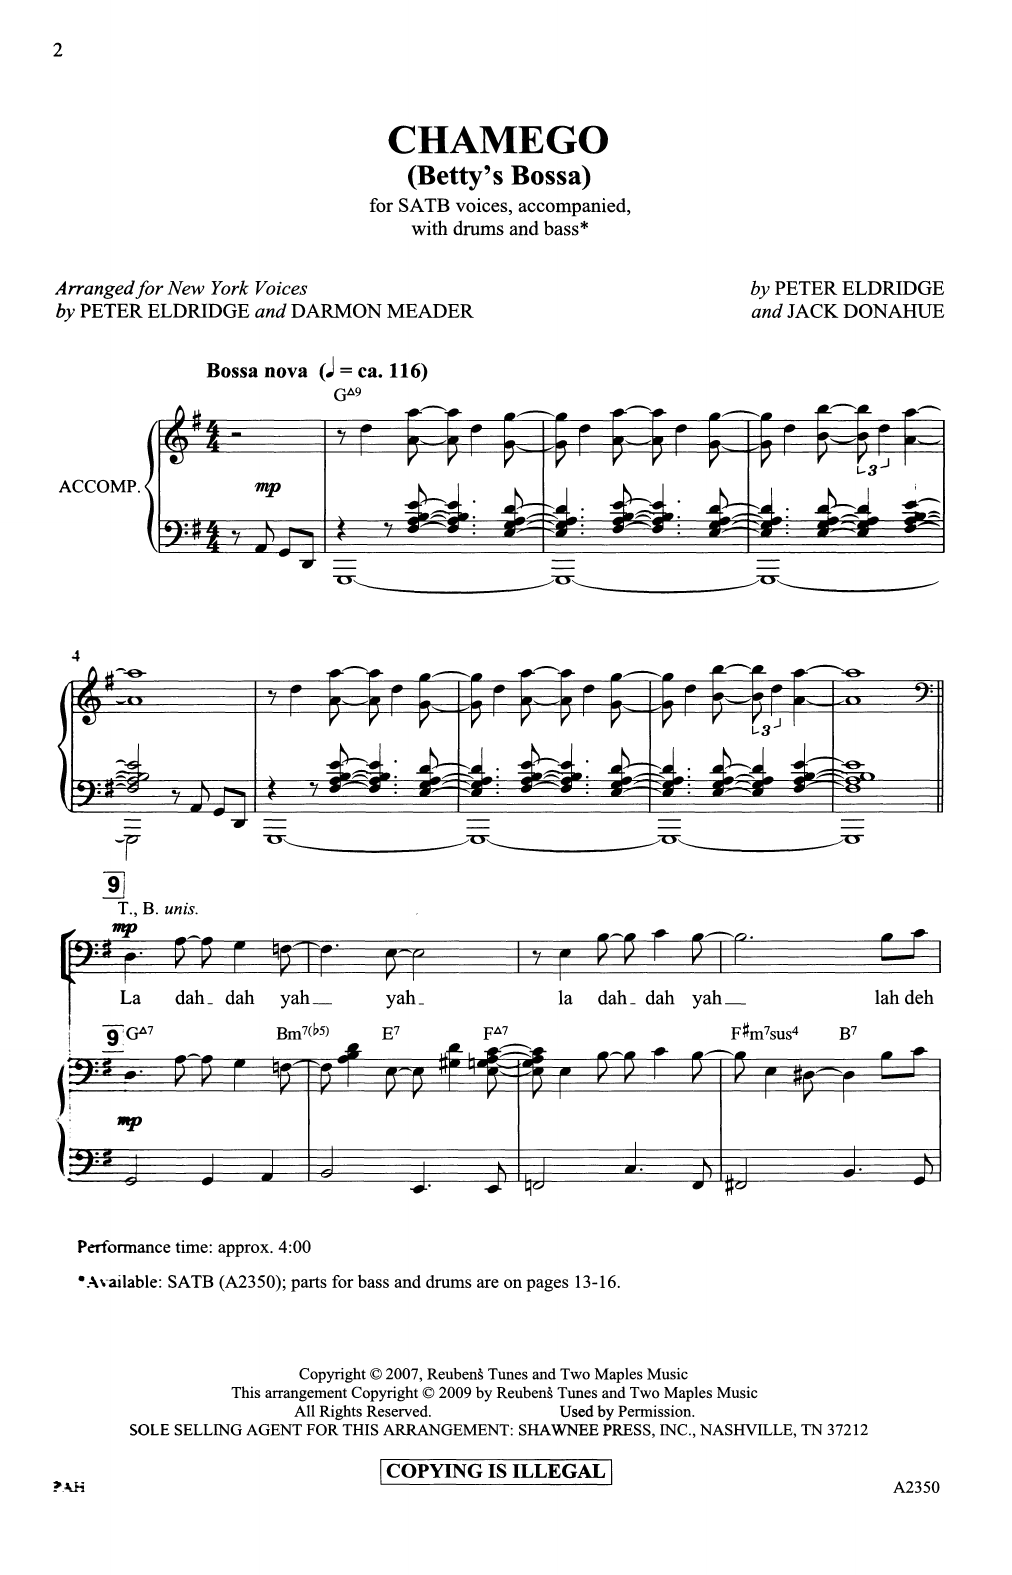 Peter Eldridge and Jack Donahue Chamego (Betty's Bossa) (arr. Darmon Meader and Peter Eldridge) sheet music notes printable PDF score